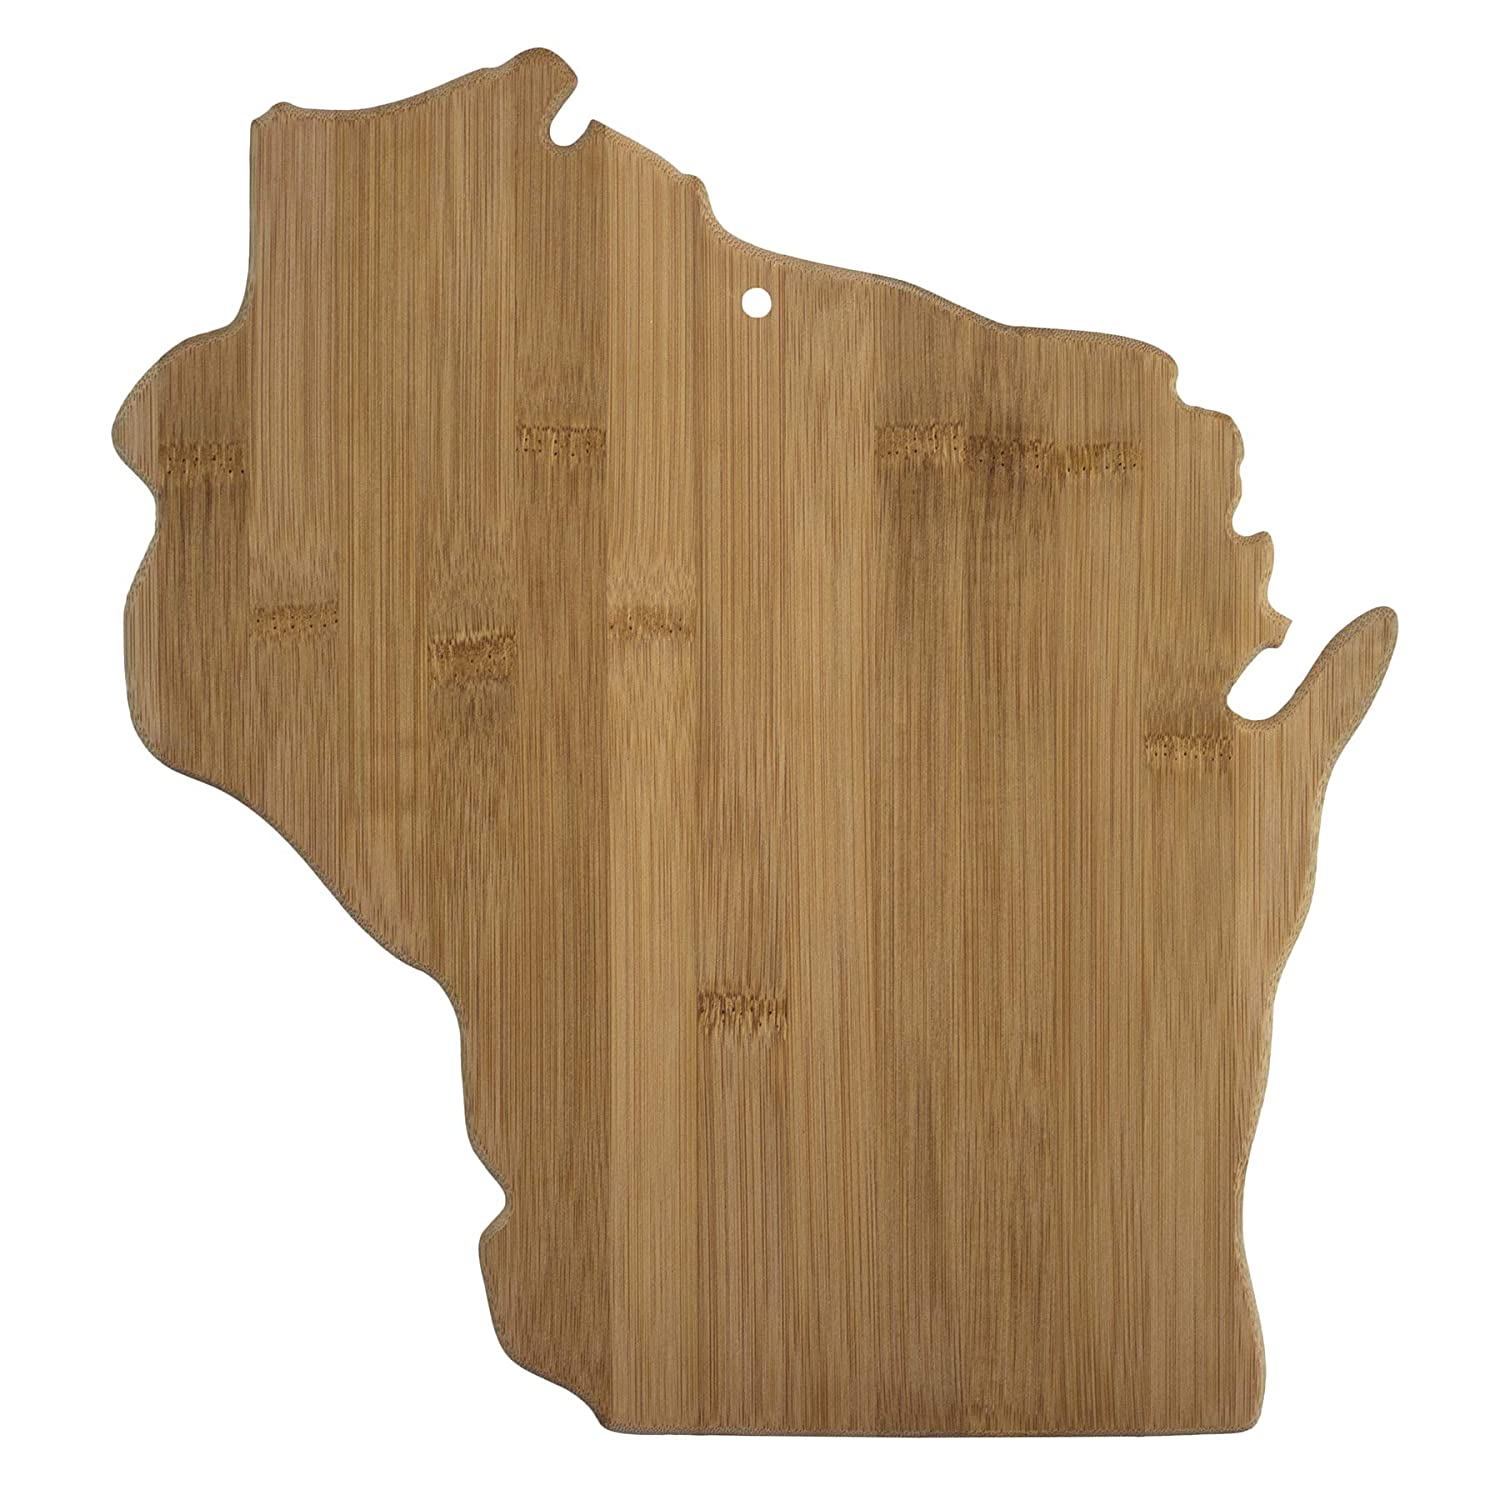 Totally Bamboo 20-7952WI Wisconsin State Shaped Bamboo Serving & Cutting Board,